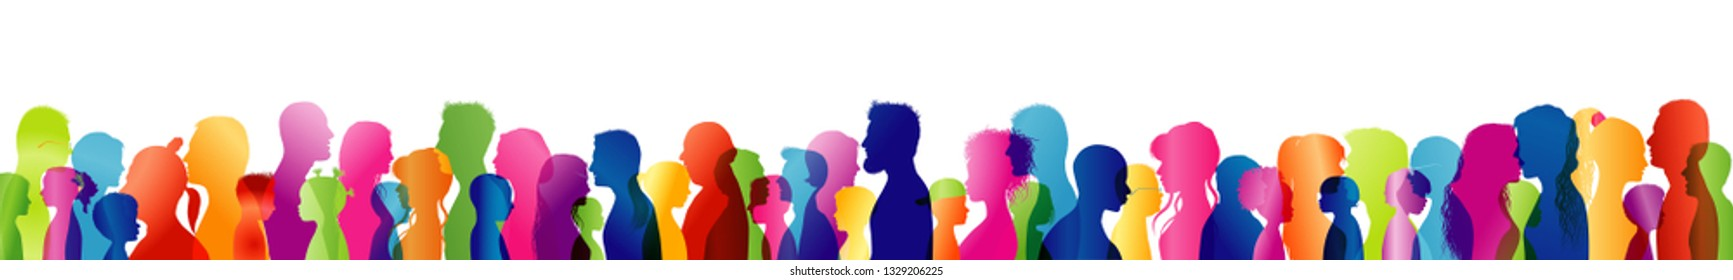 Dialogue between different people of different ages and multi-ethnic. Silhouette colored profile heads. People talking. Talking crowd. Multiple exposure